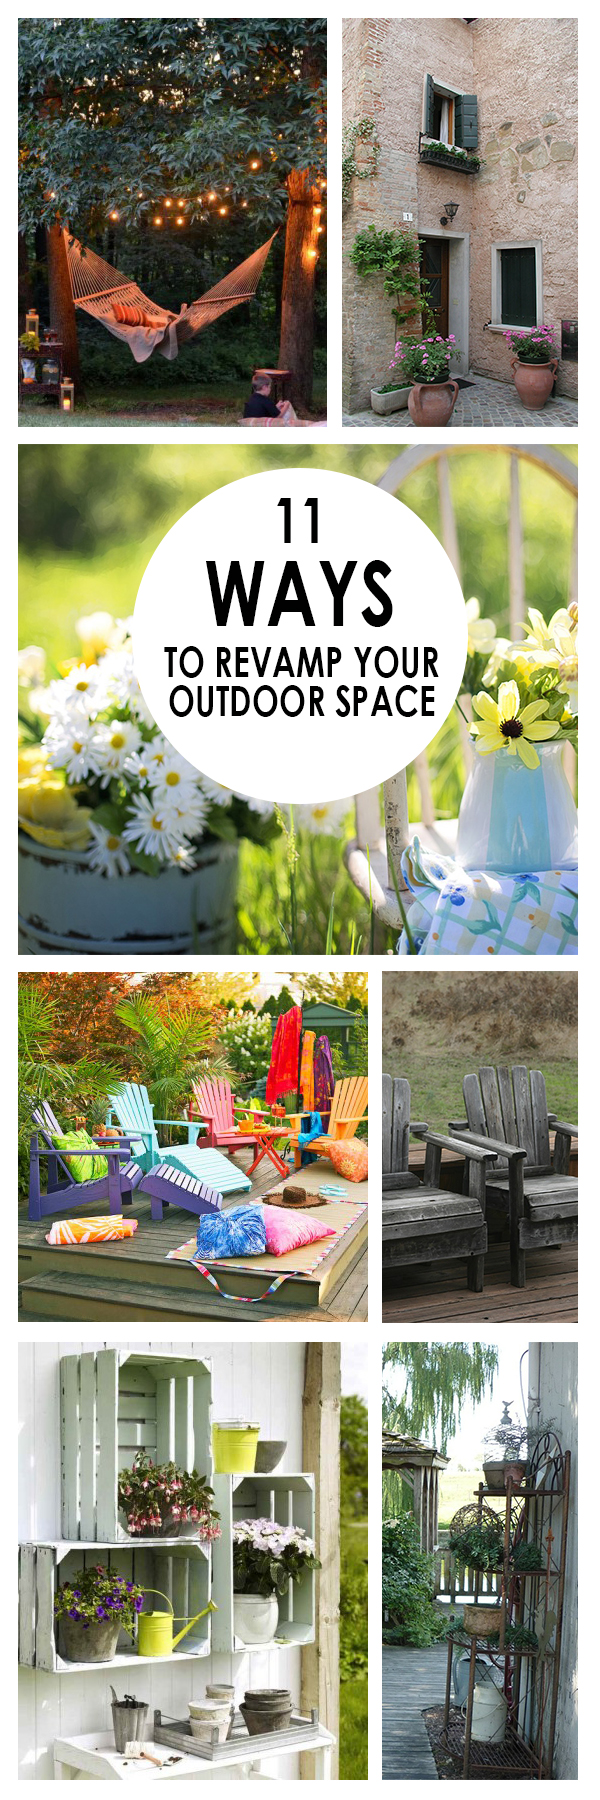 Outdoor living, outdoor tips and tricks, backyard updates, gardening DIY, summer activities, bees and roses